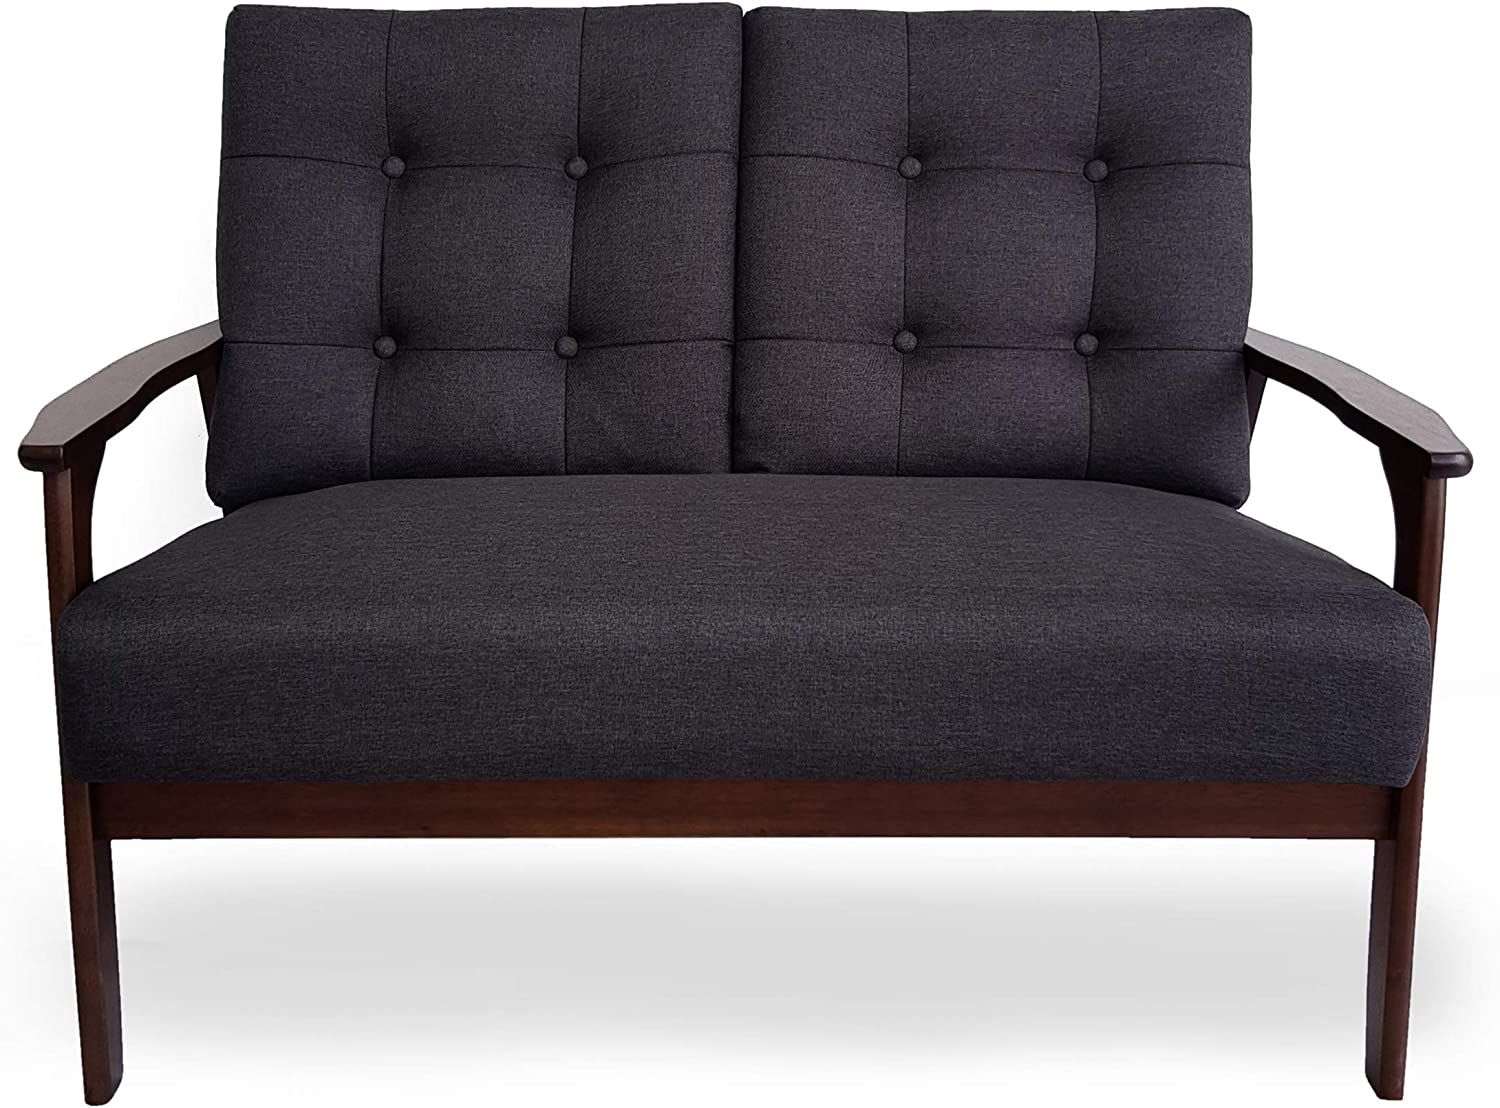 Christopher Knight Home Athena Mid Century Waffle Stitch Tufted Accent Loveseat with Rubberwood Legs-Black and Walnut Finish